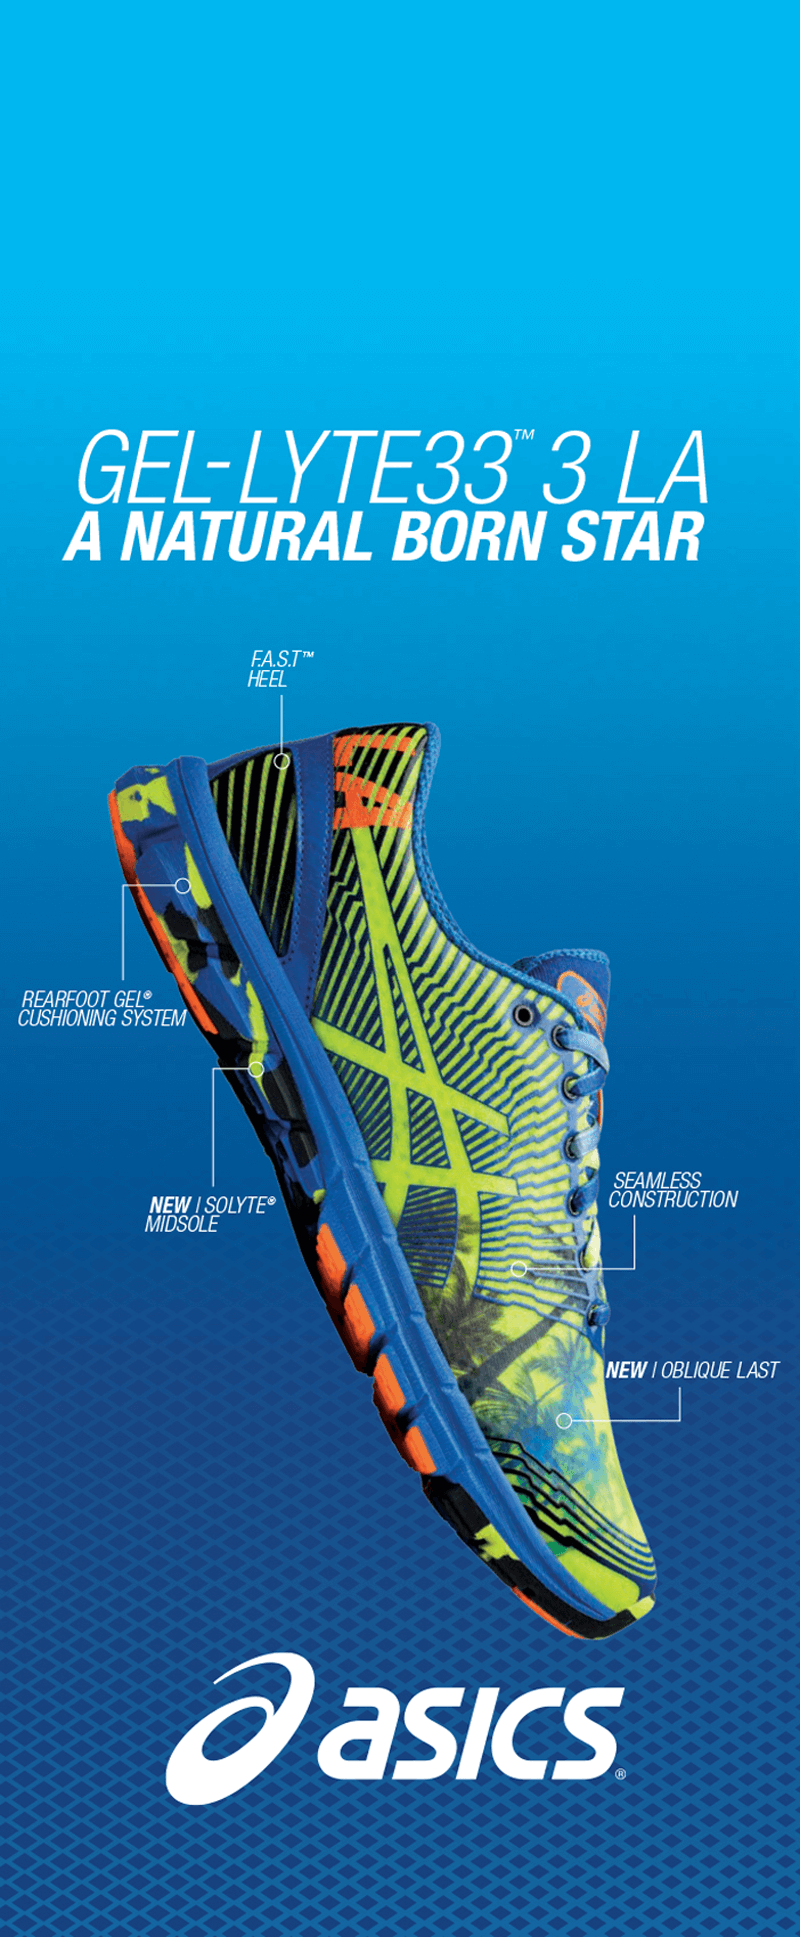 ASICS poster featuring a shoe